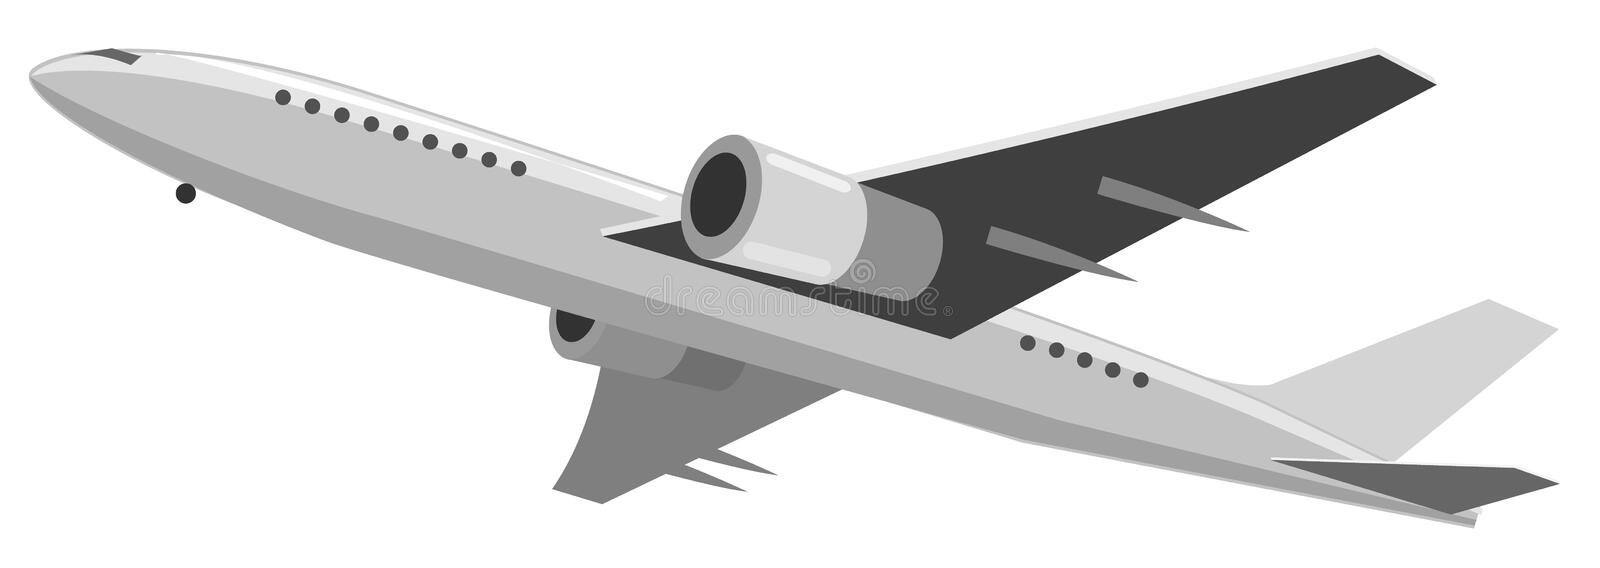 Download Illustration Of Airplane Stock Photography - Image: 14764352